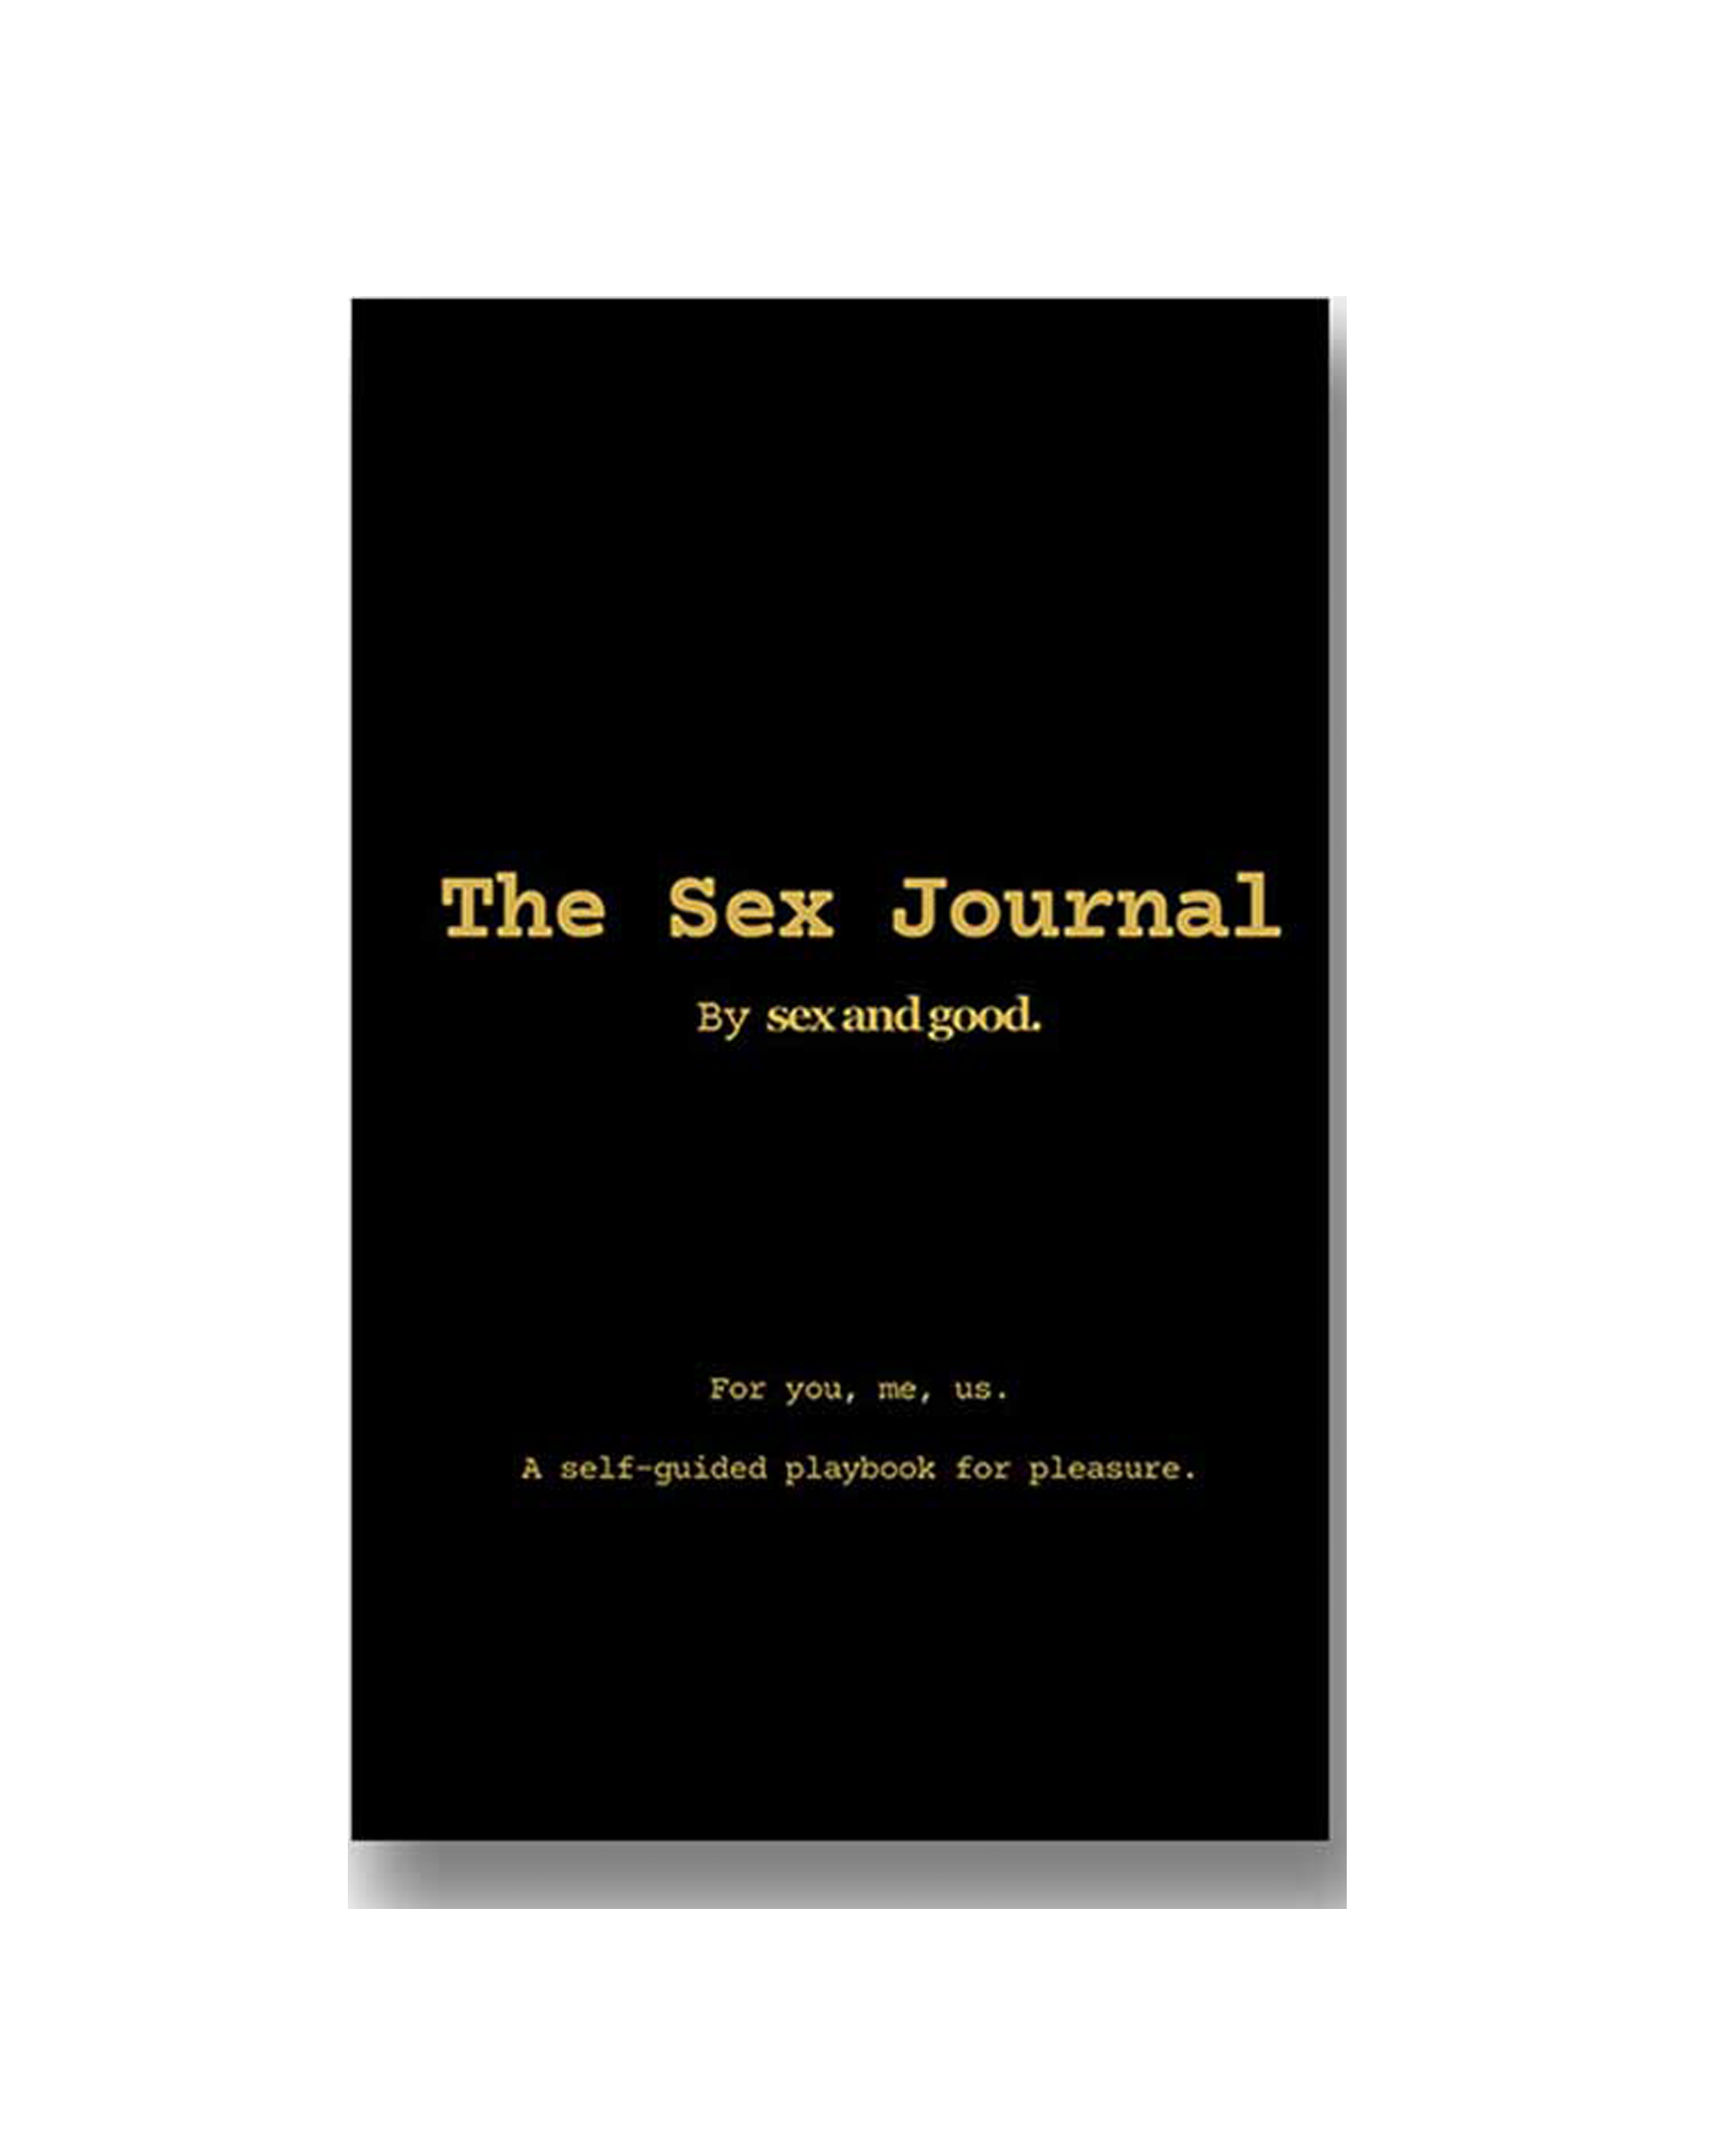 the sex journal Sex and Good S&G